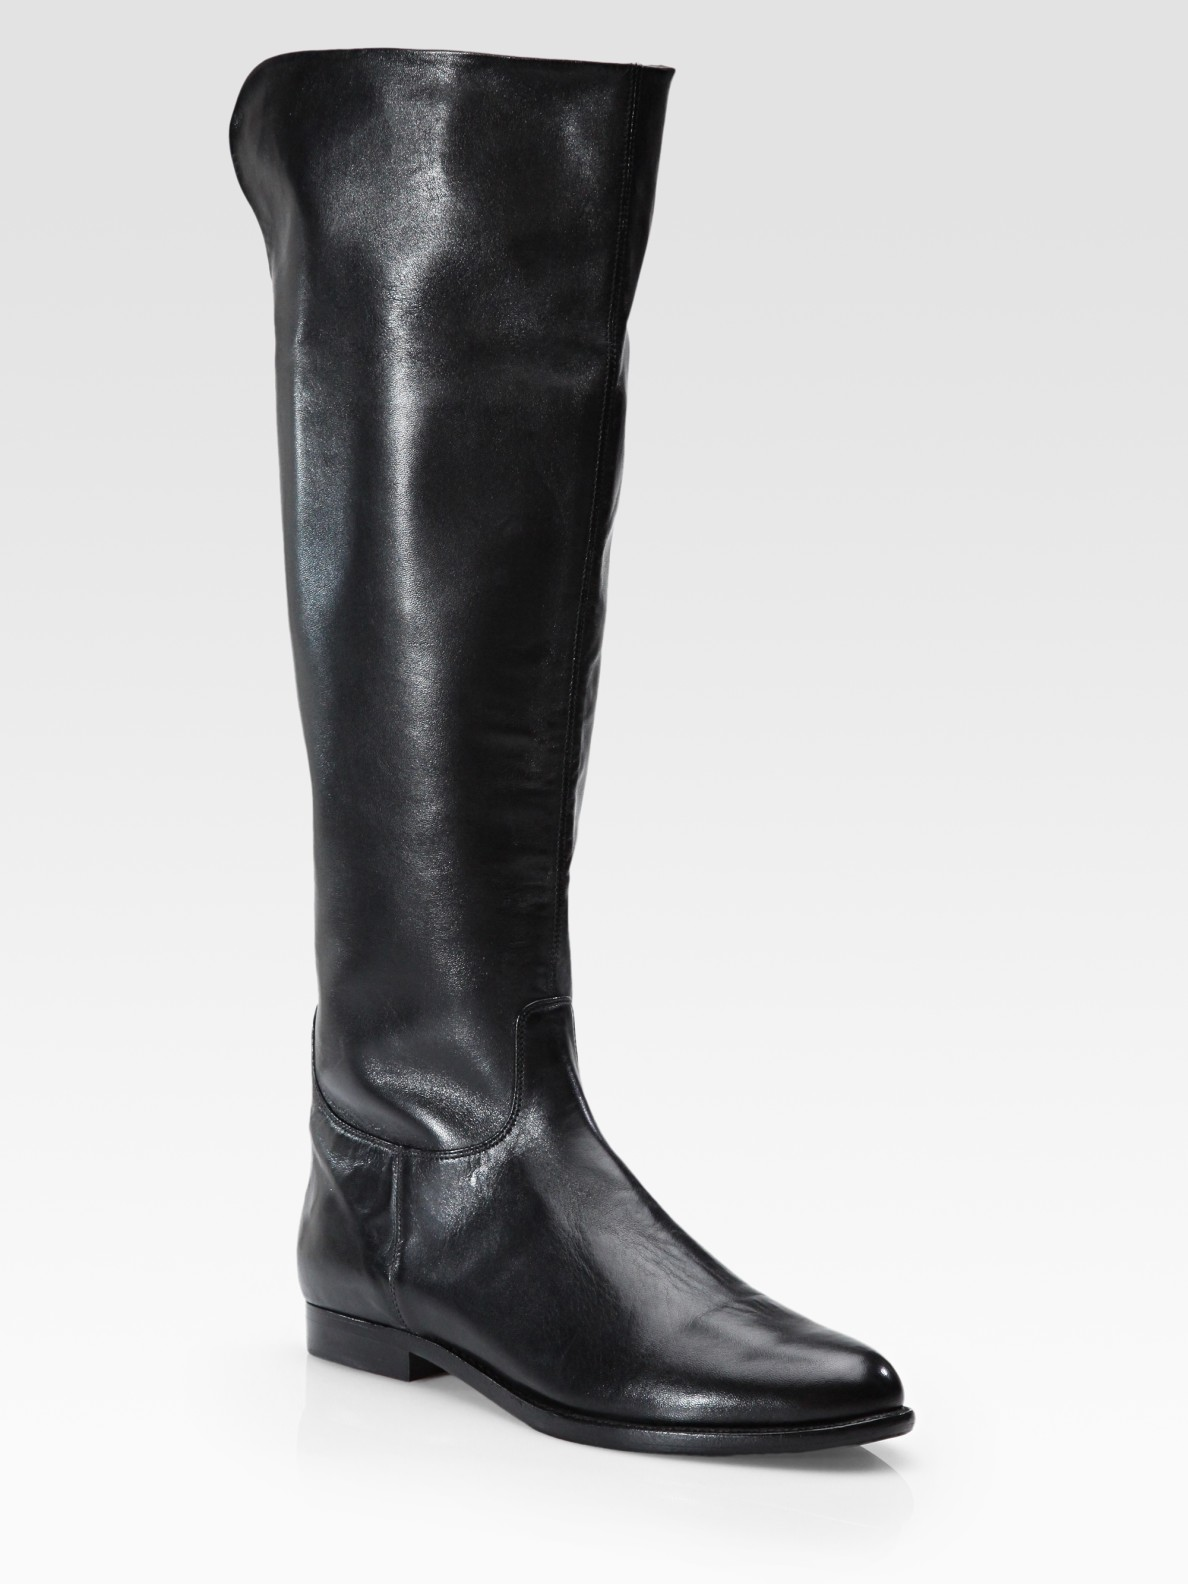 elie tahari flannery flat leather knee high boots in black